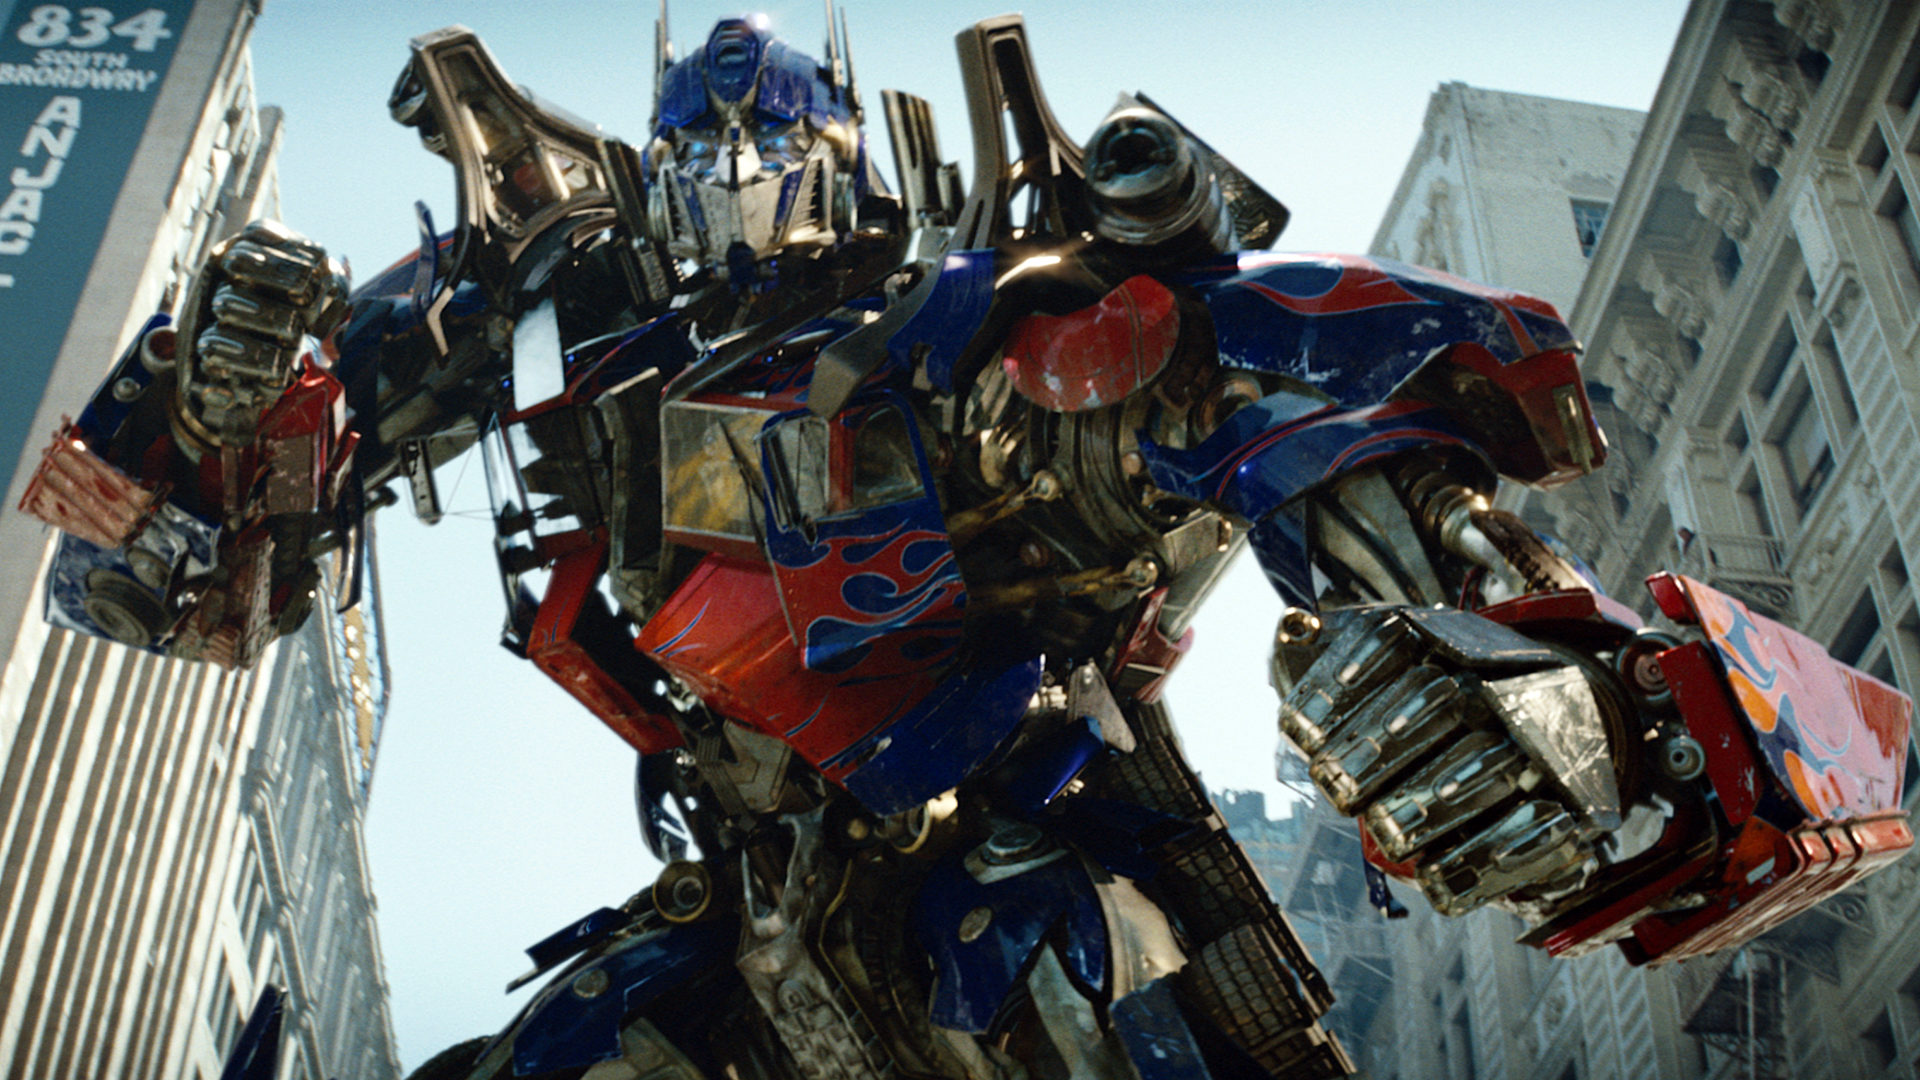 Transformers 2007 About The Movie Amblin